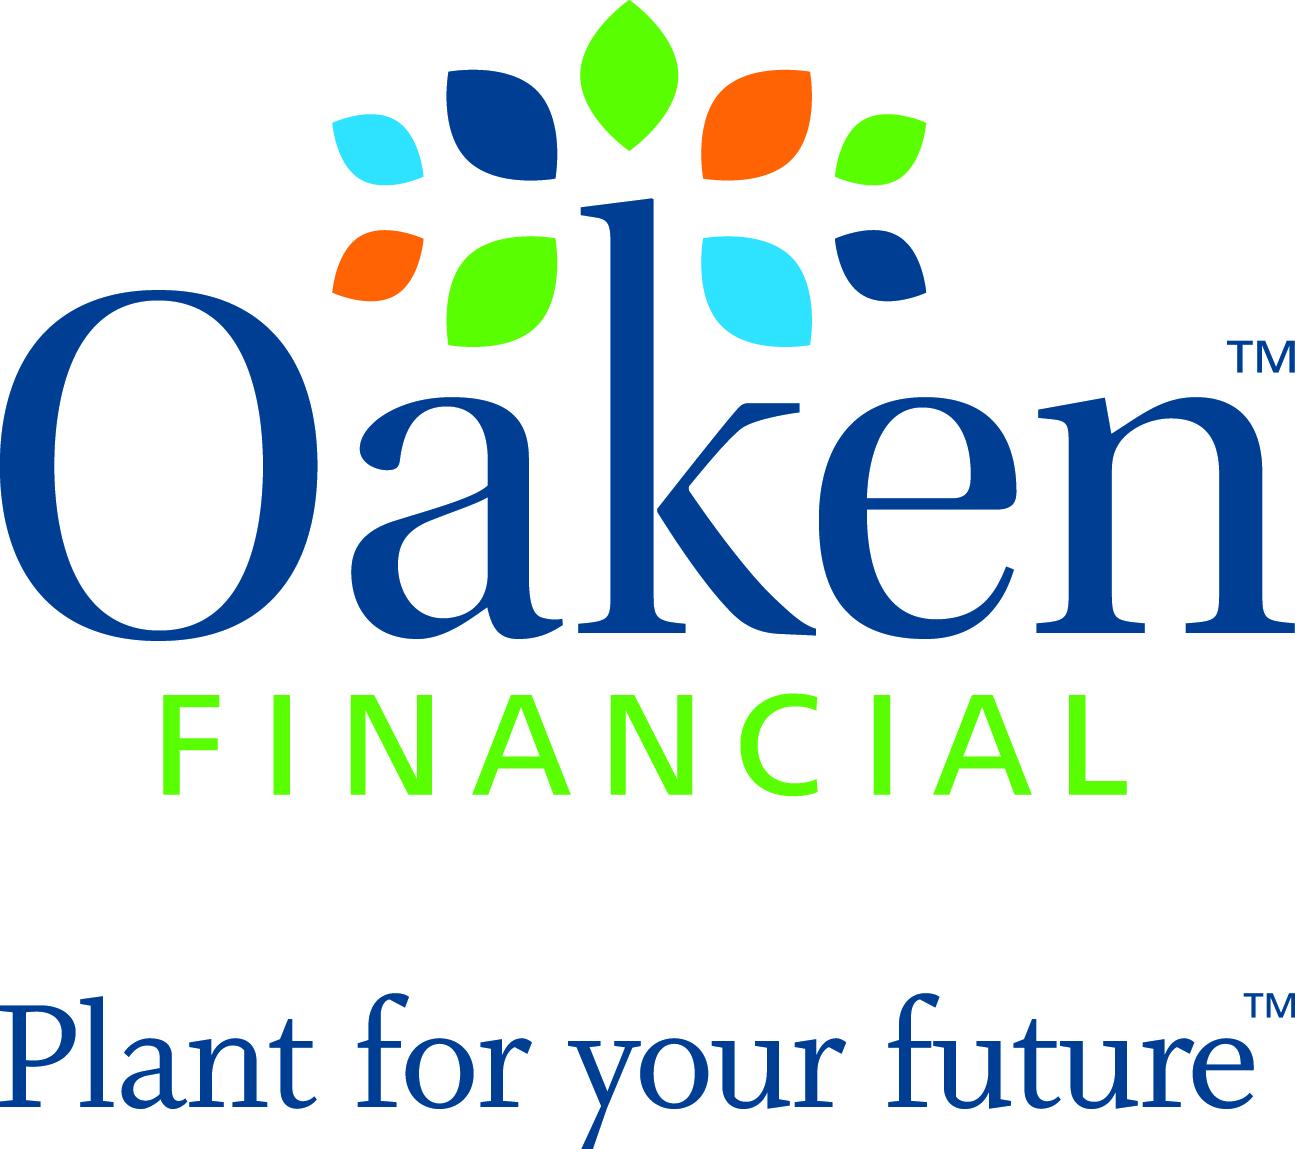 Oaken Financial  - Plant for your future